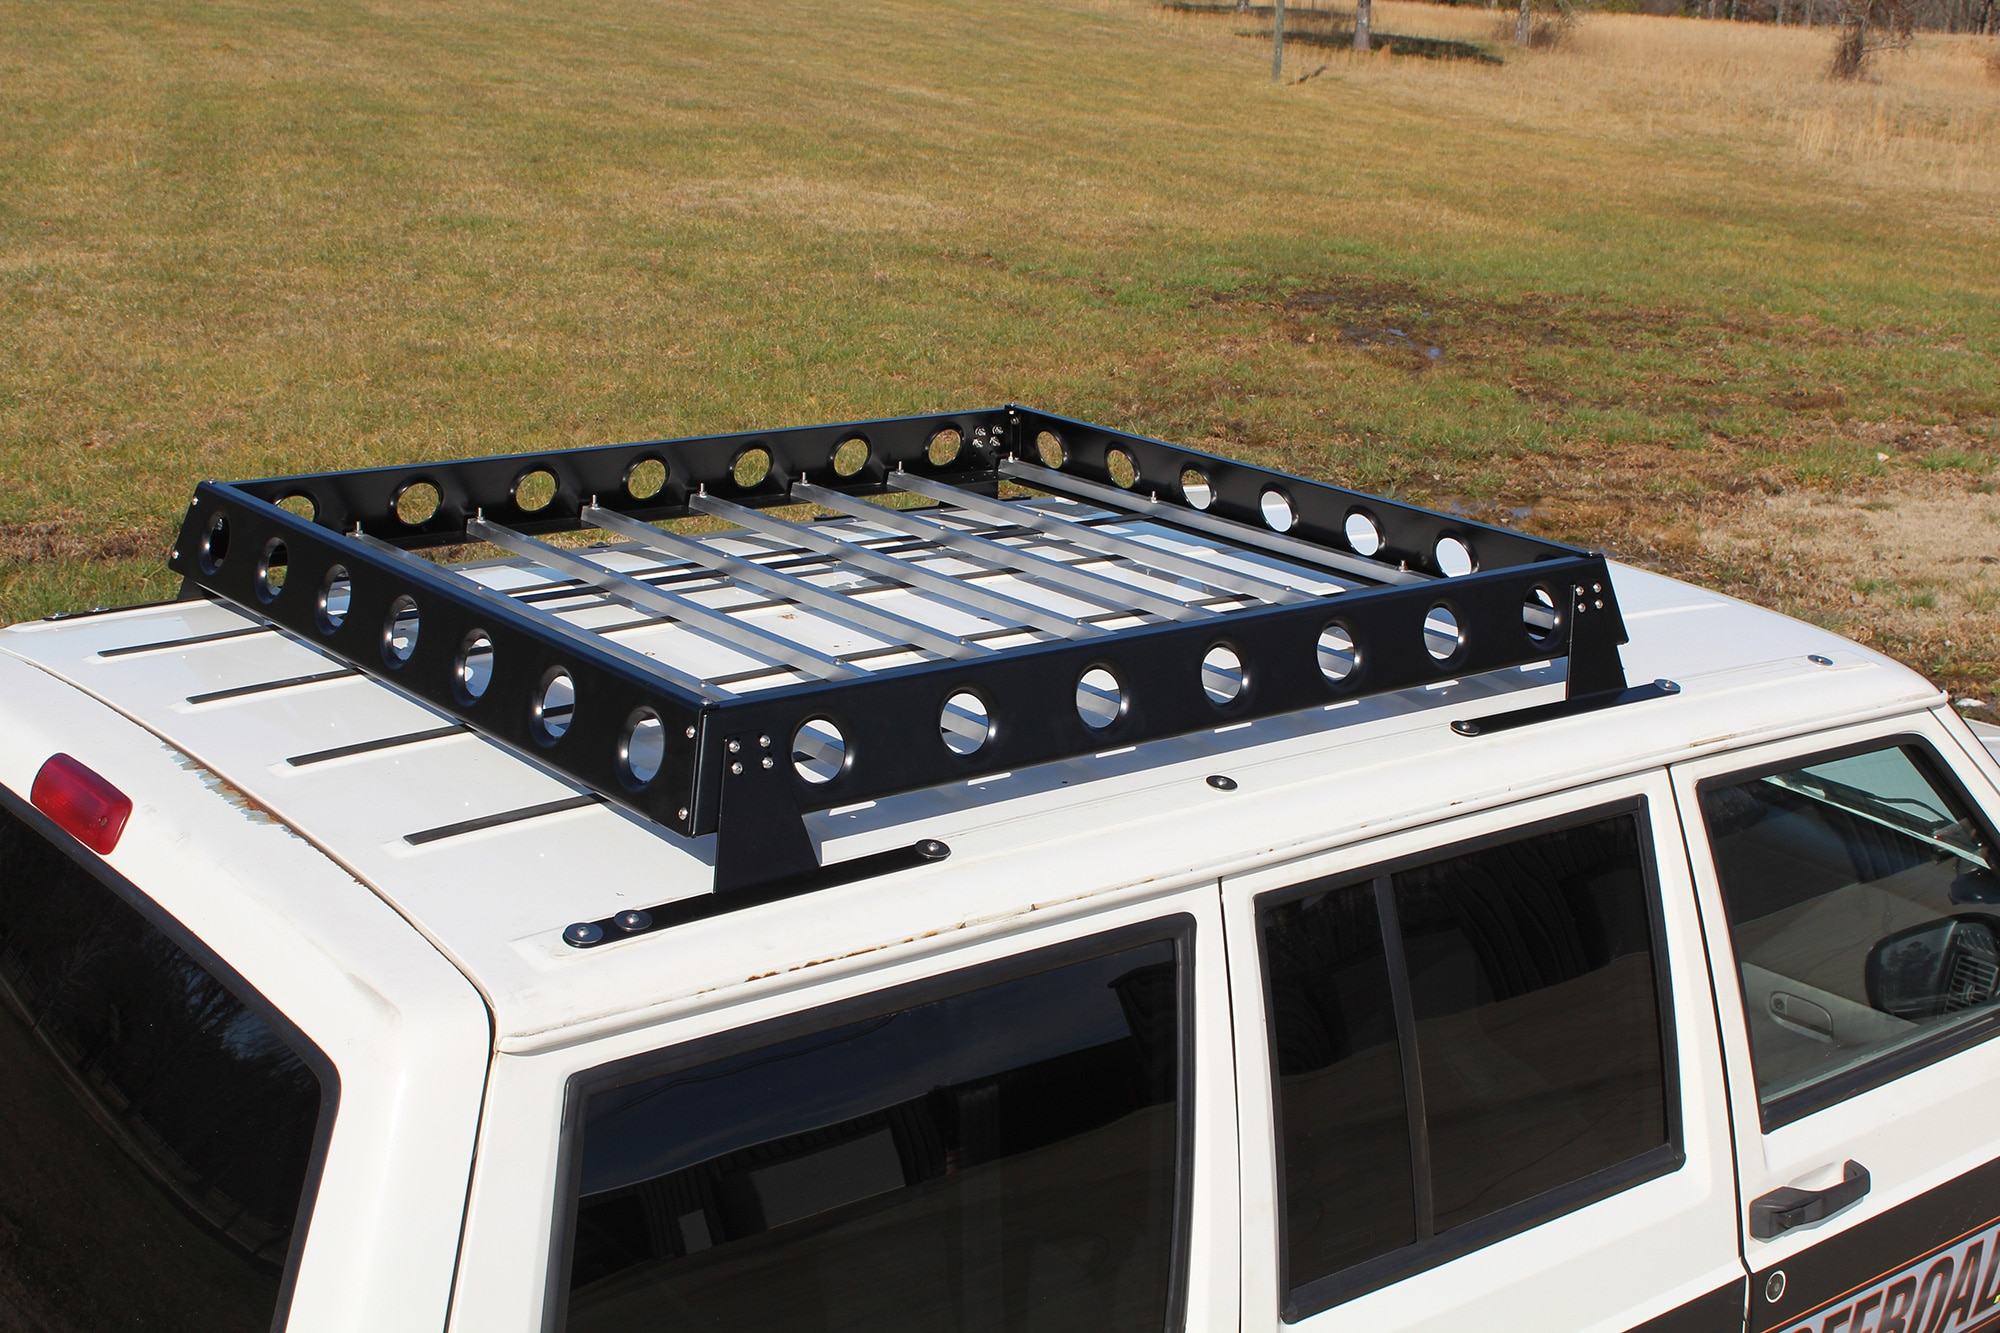 new products rustys off road roof rack jeep xj zj grand cherokee